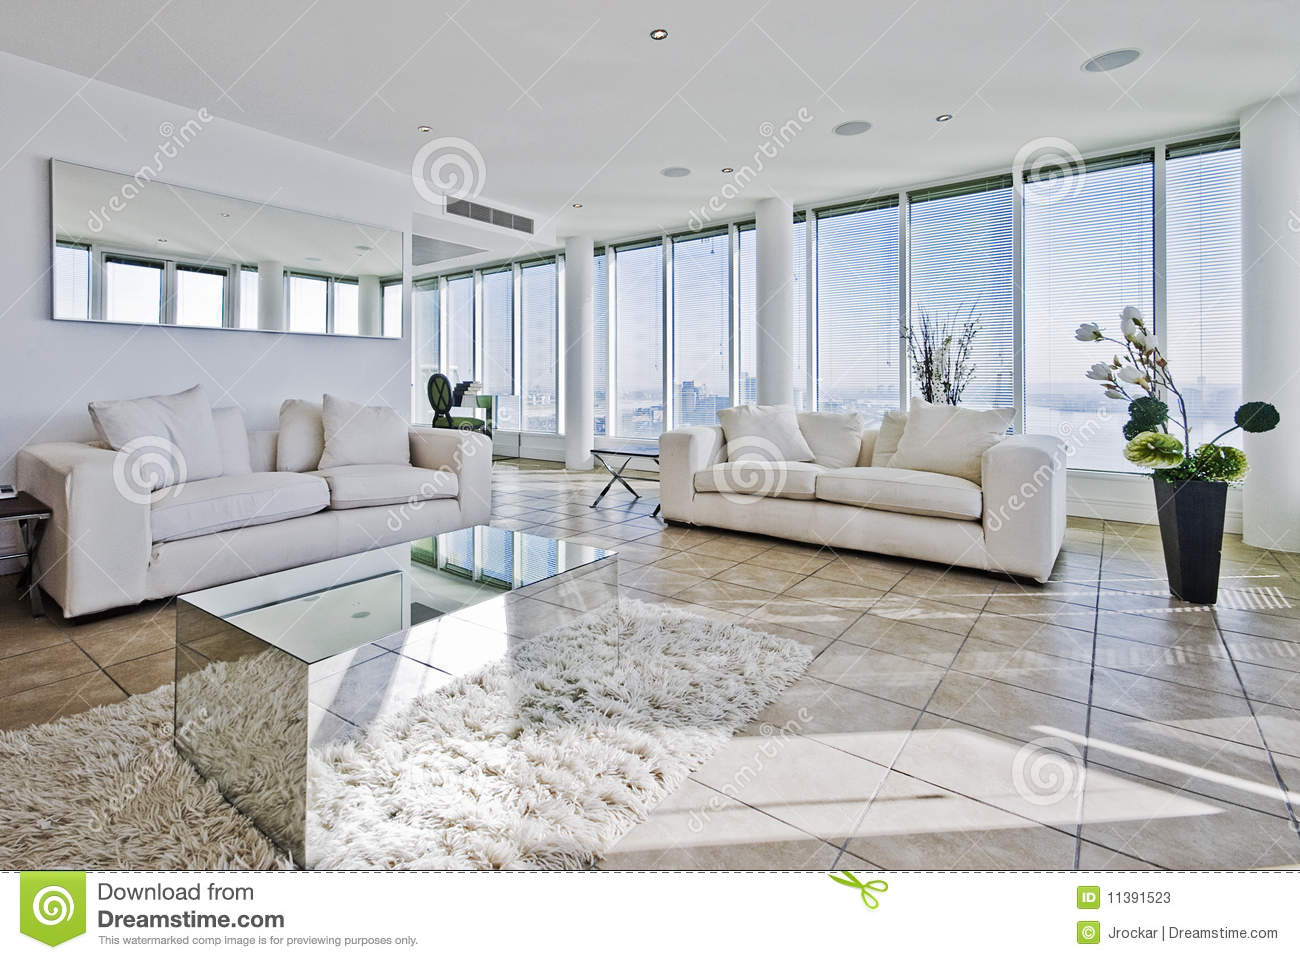 Penthouse living room stock image. Image of column, lounge - 11391523